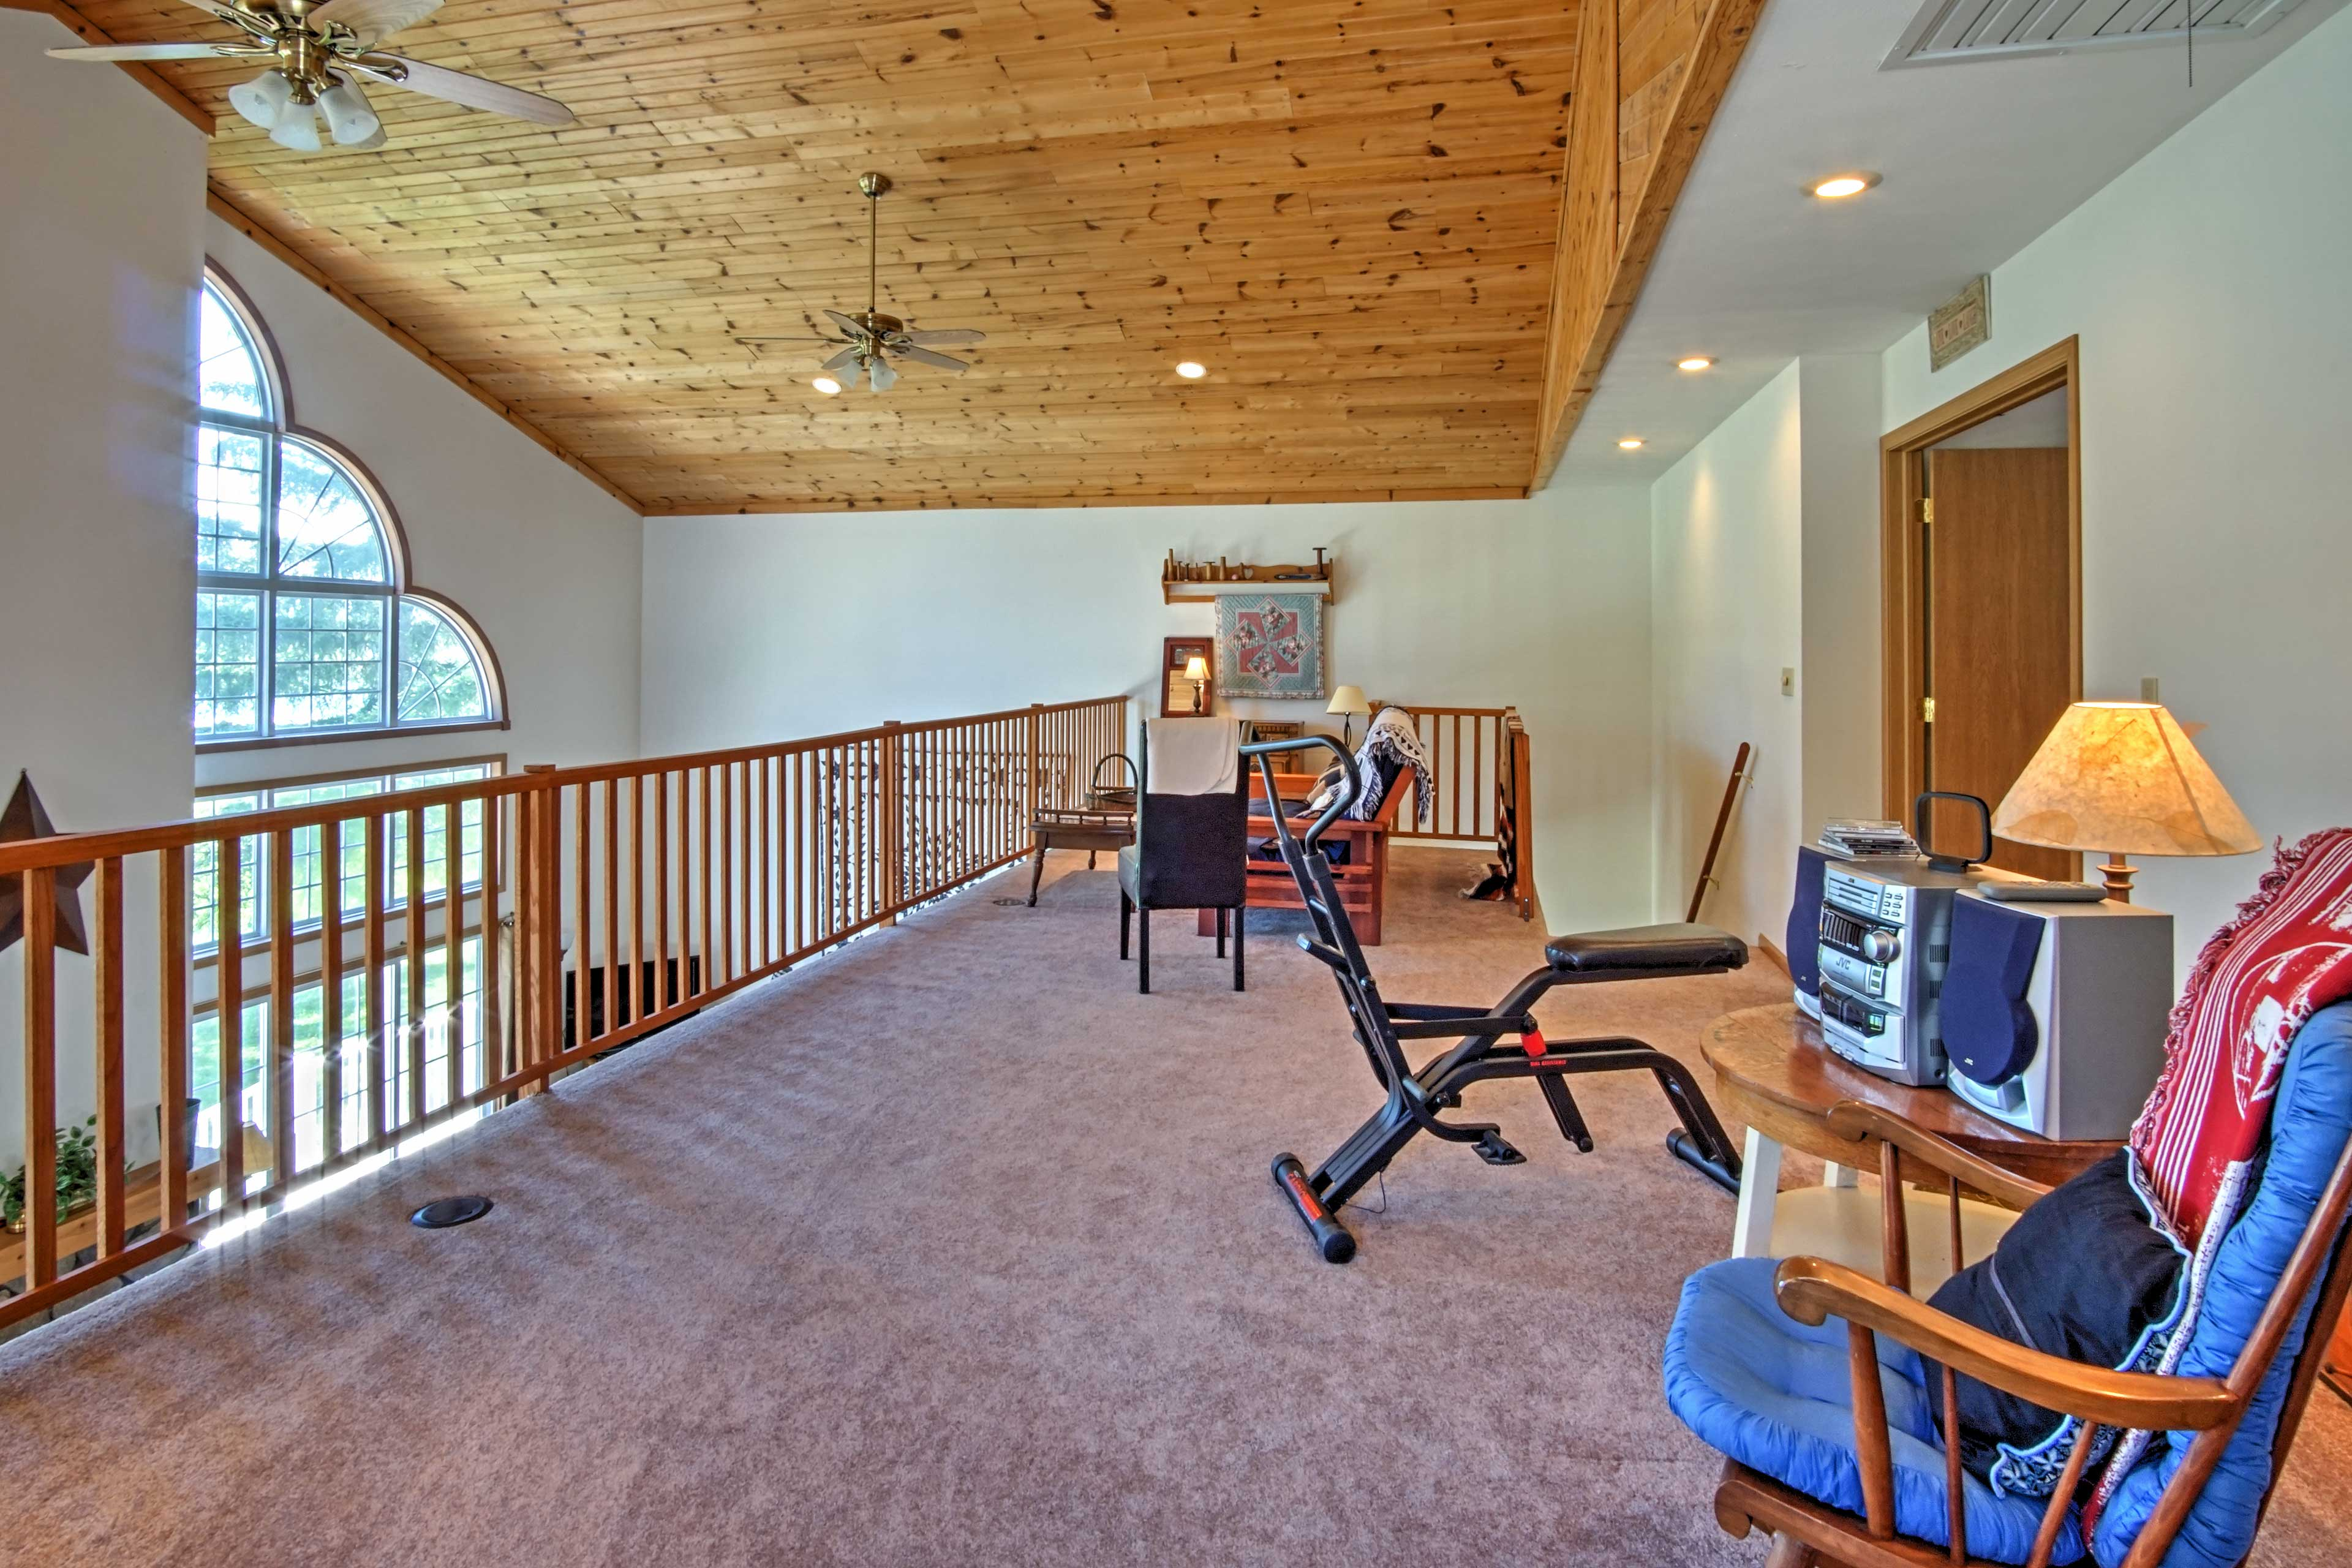 The loft area offers additional sleeping on a cozy futon.